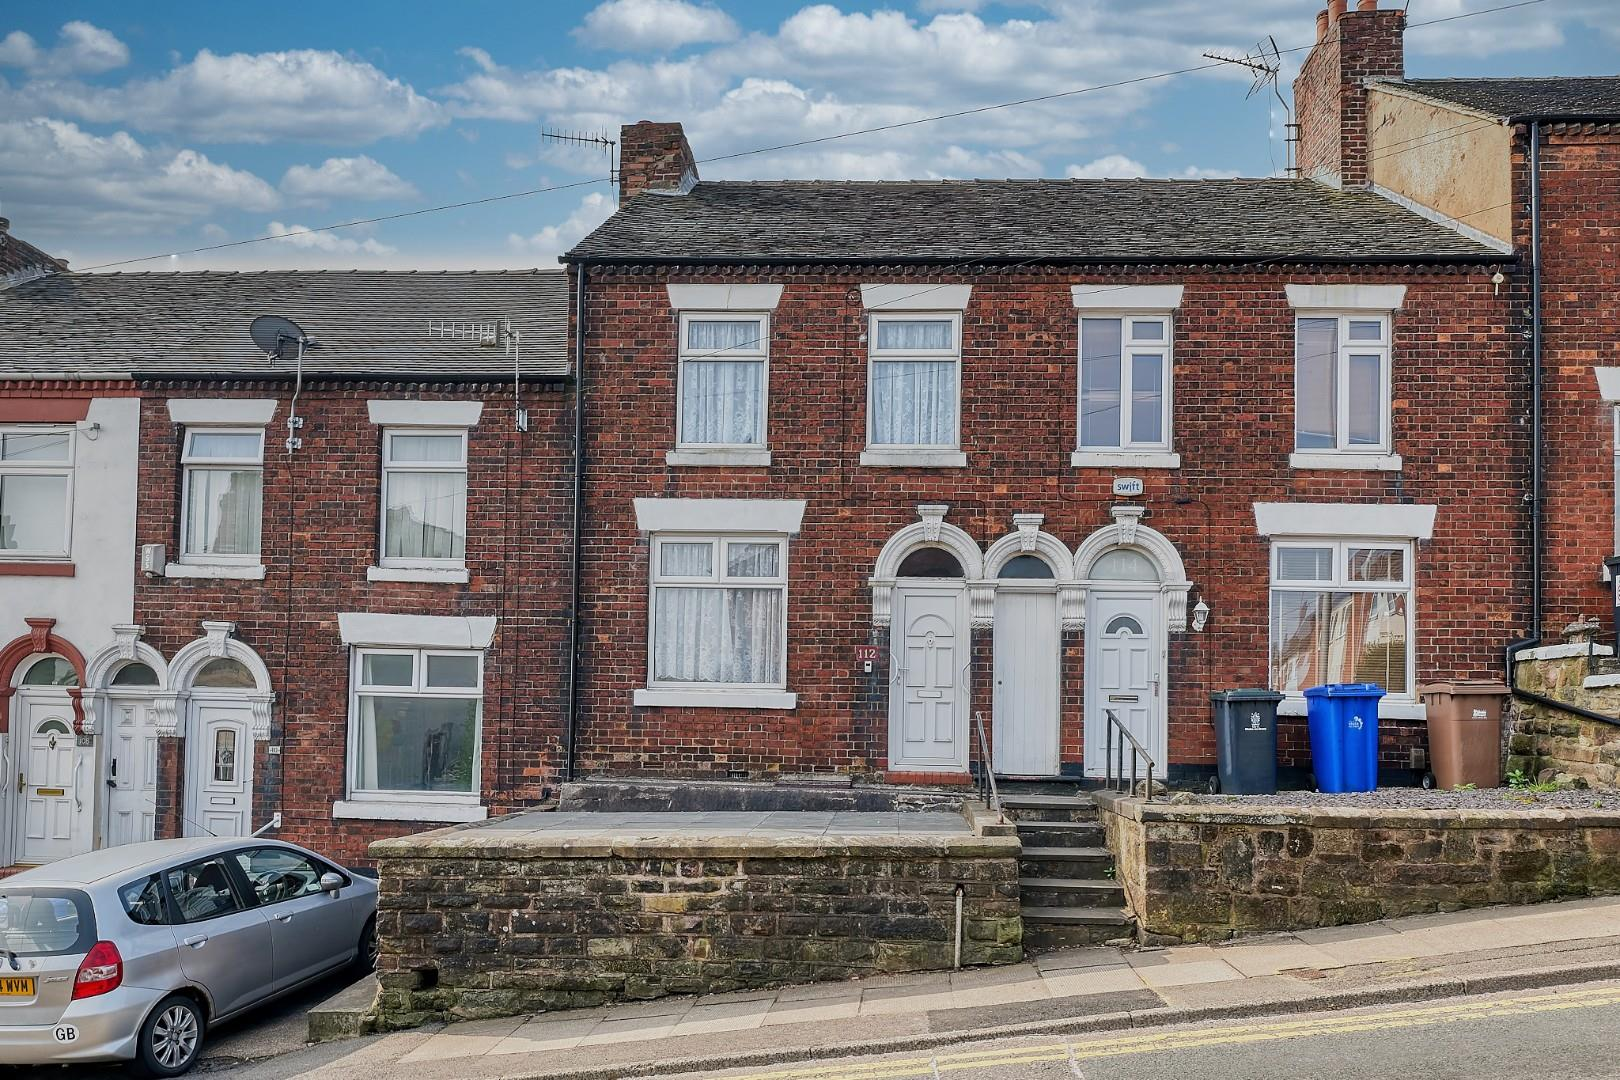 3 bed terraced house for sale in Penkhull New Road, Stoke-On-Trent, ST4